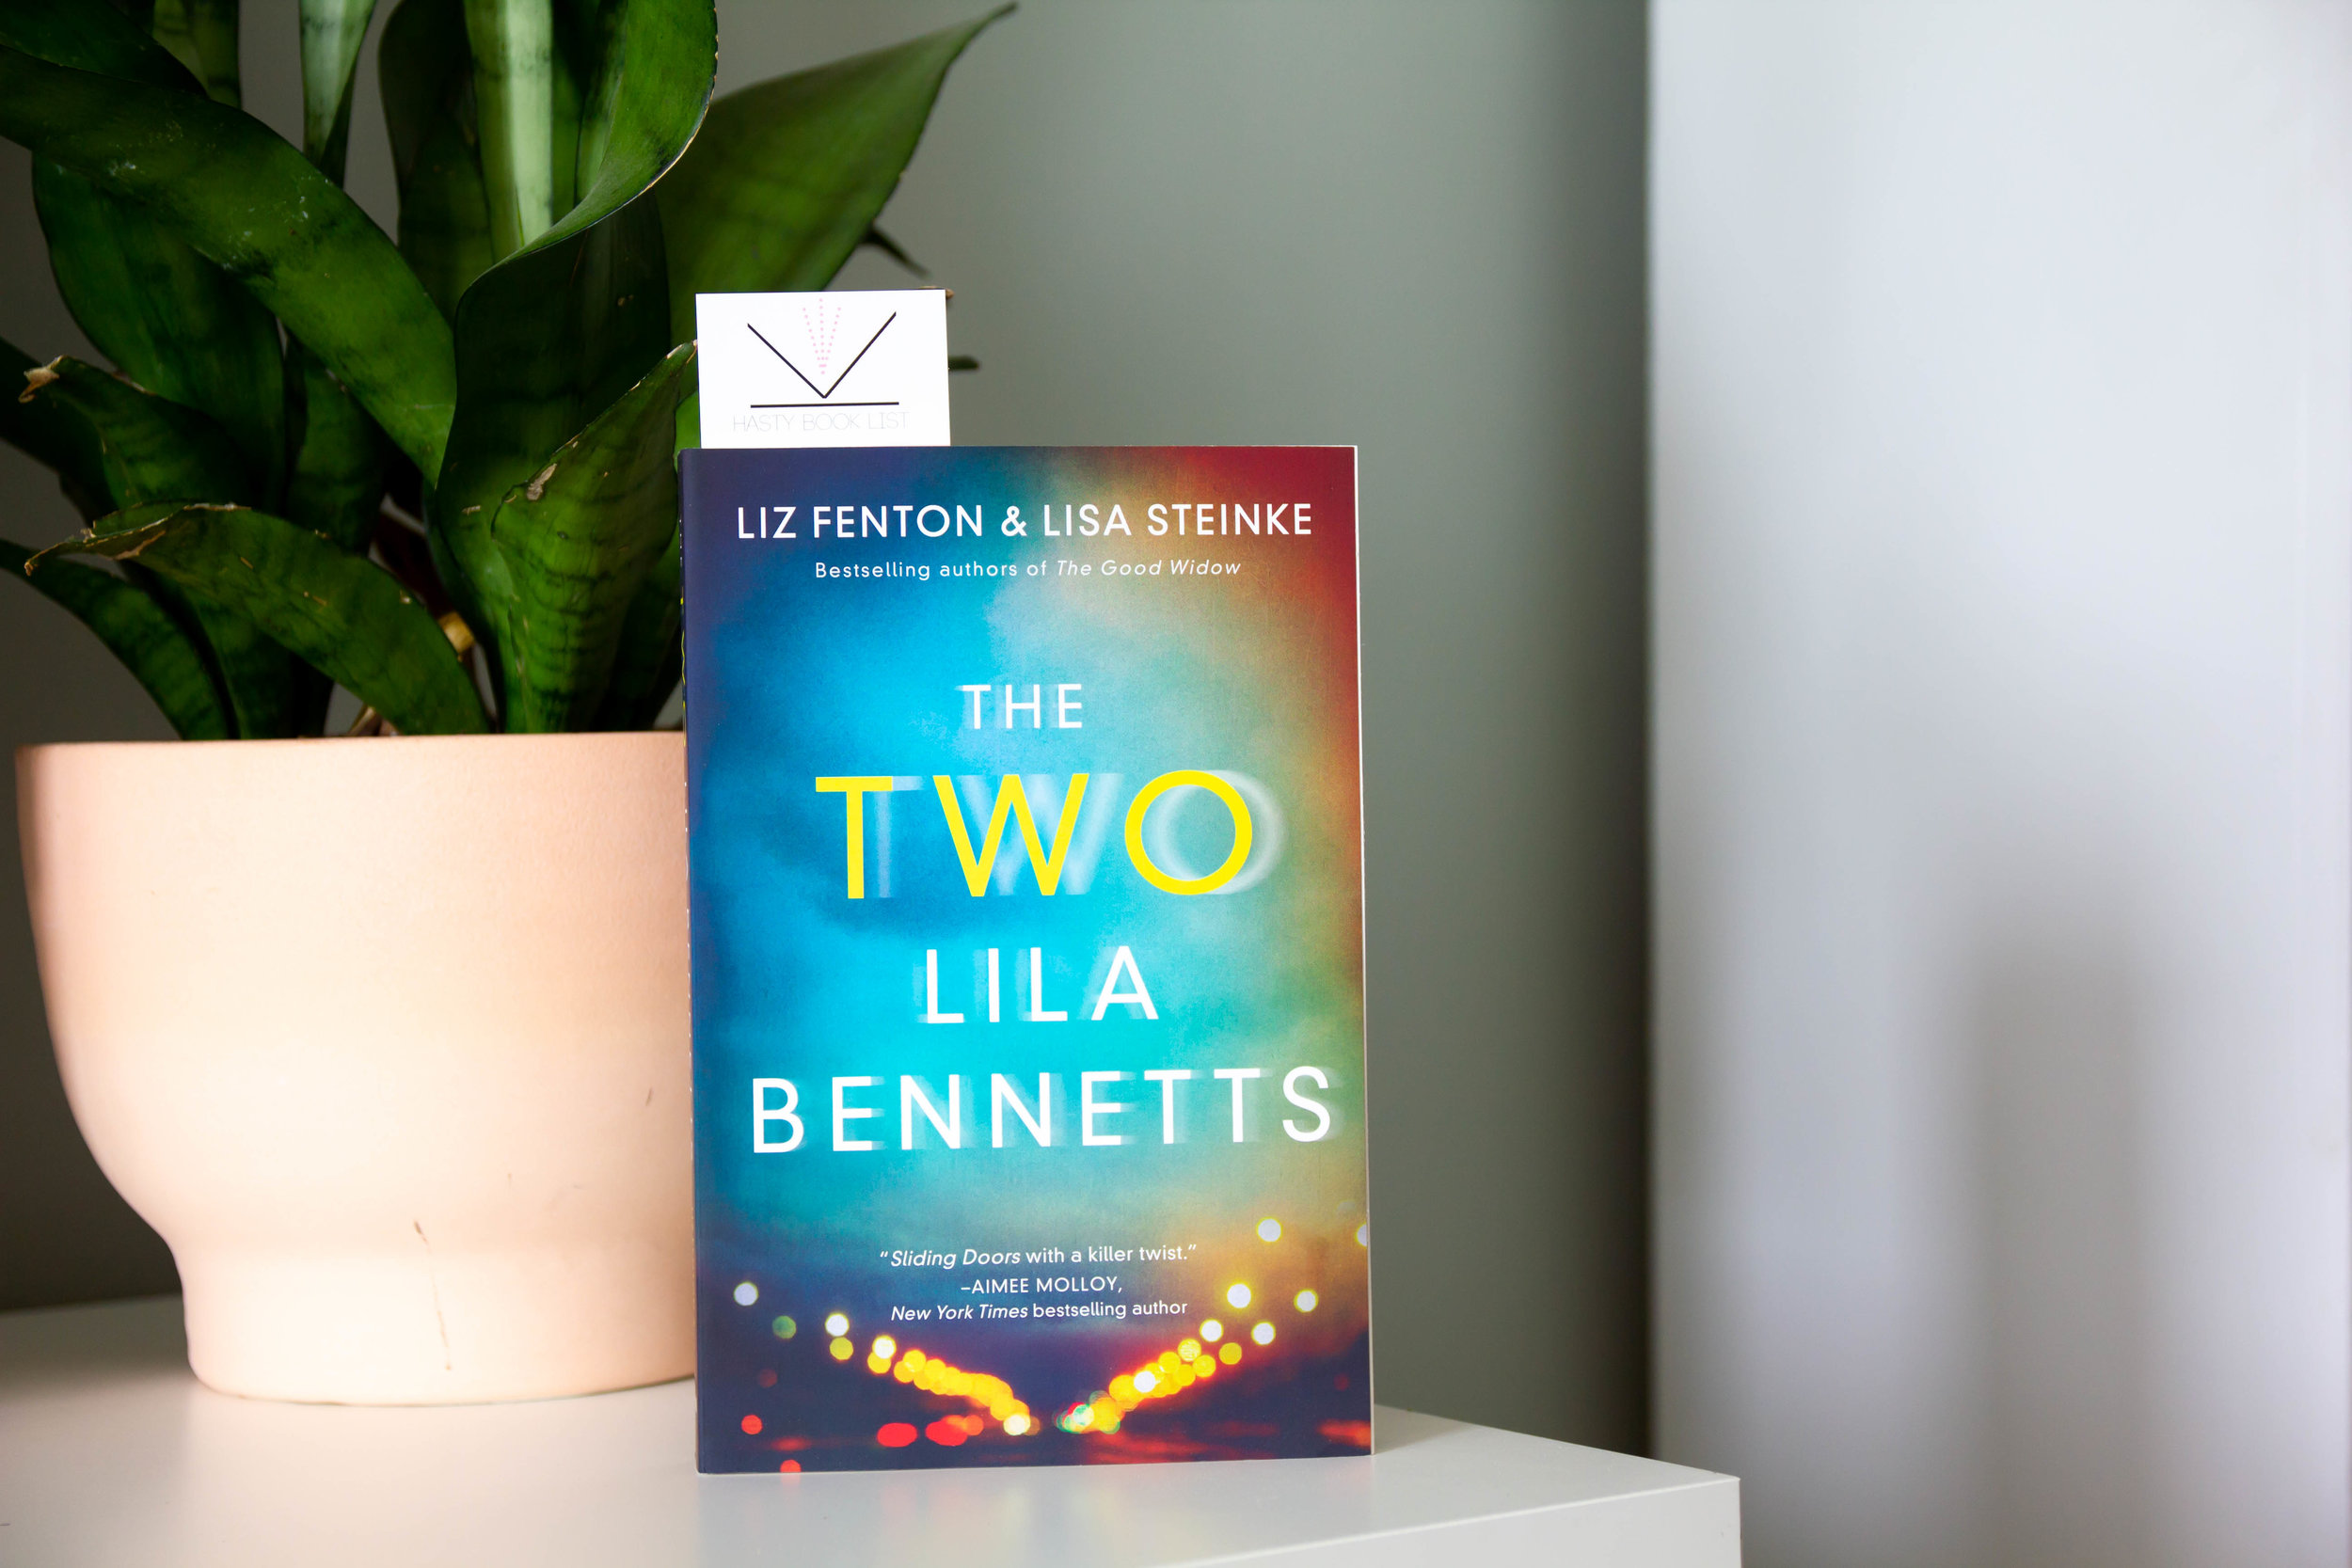 Book Feature - The Two Lila Bennetts by Liz Fenton and Lisa Steinke